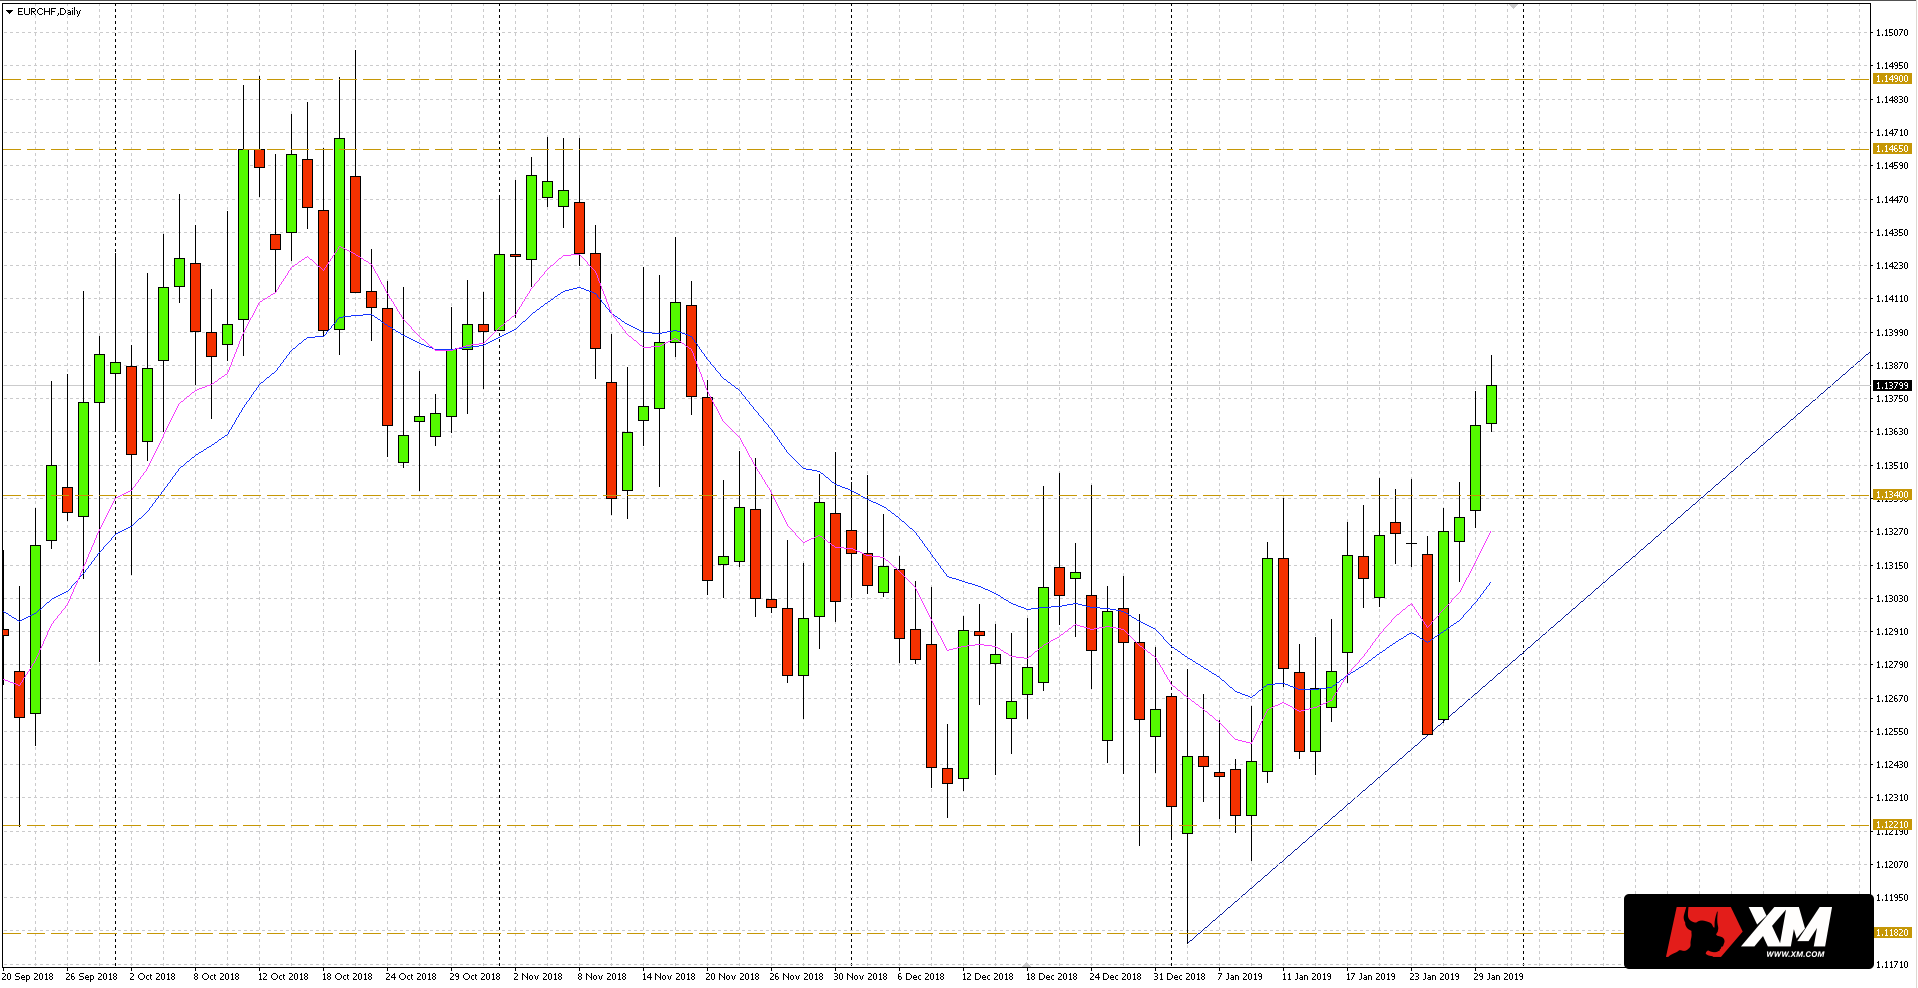 hight resolution of euro eur in relation to the swiss franc chf overcomes important resistance 30 01 19